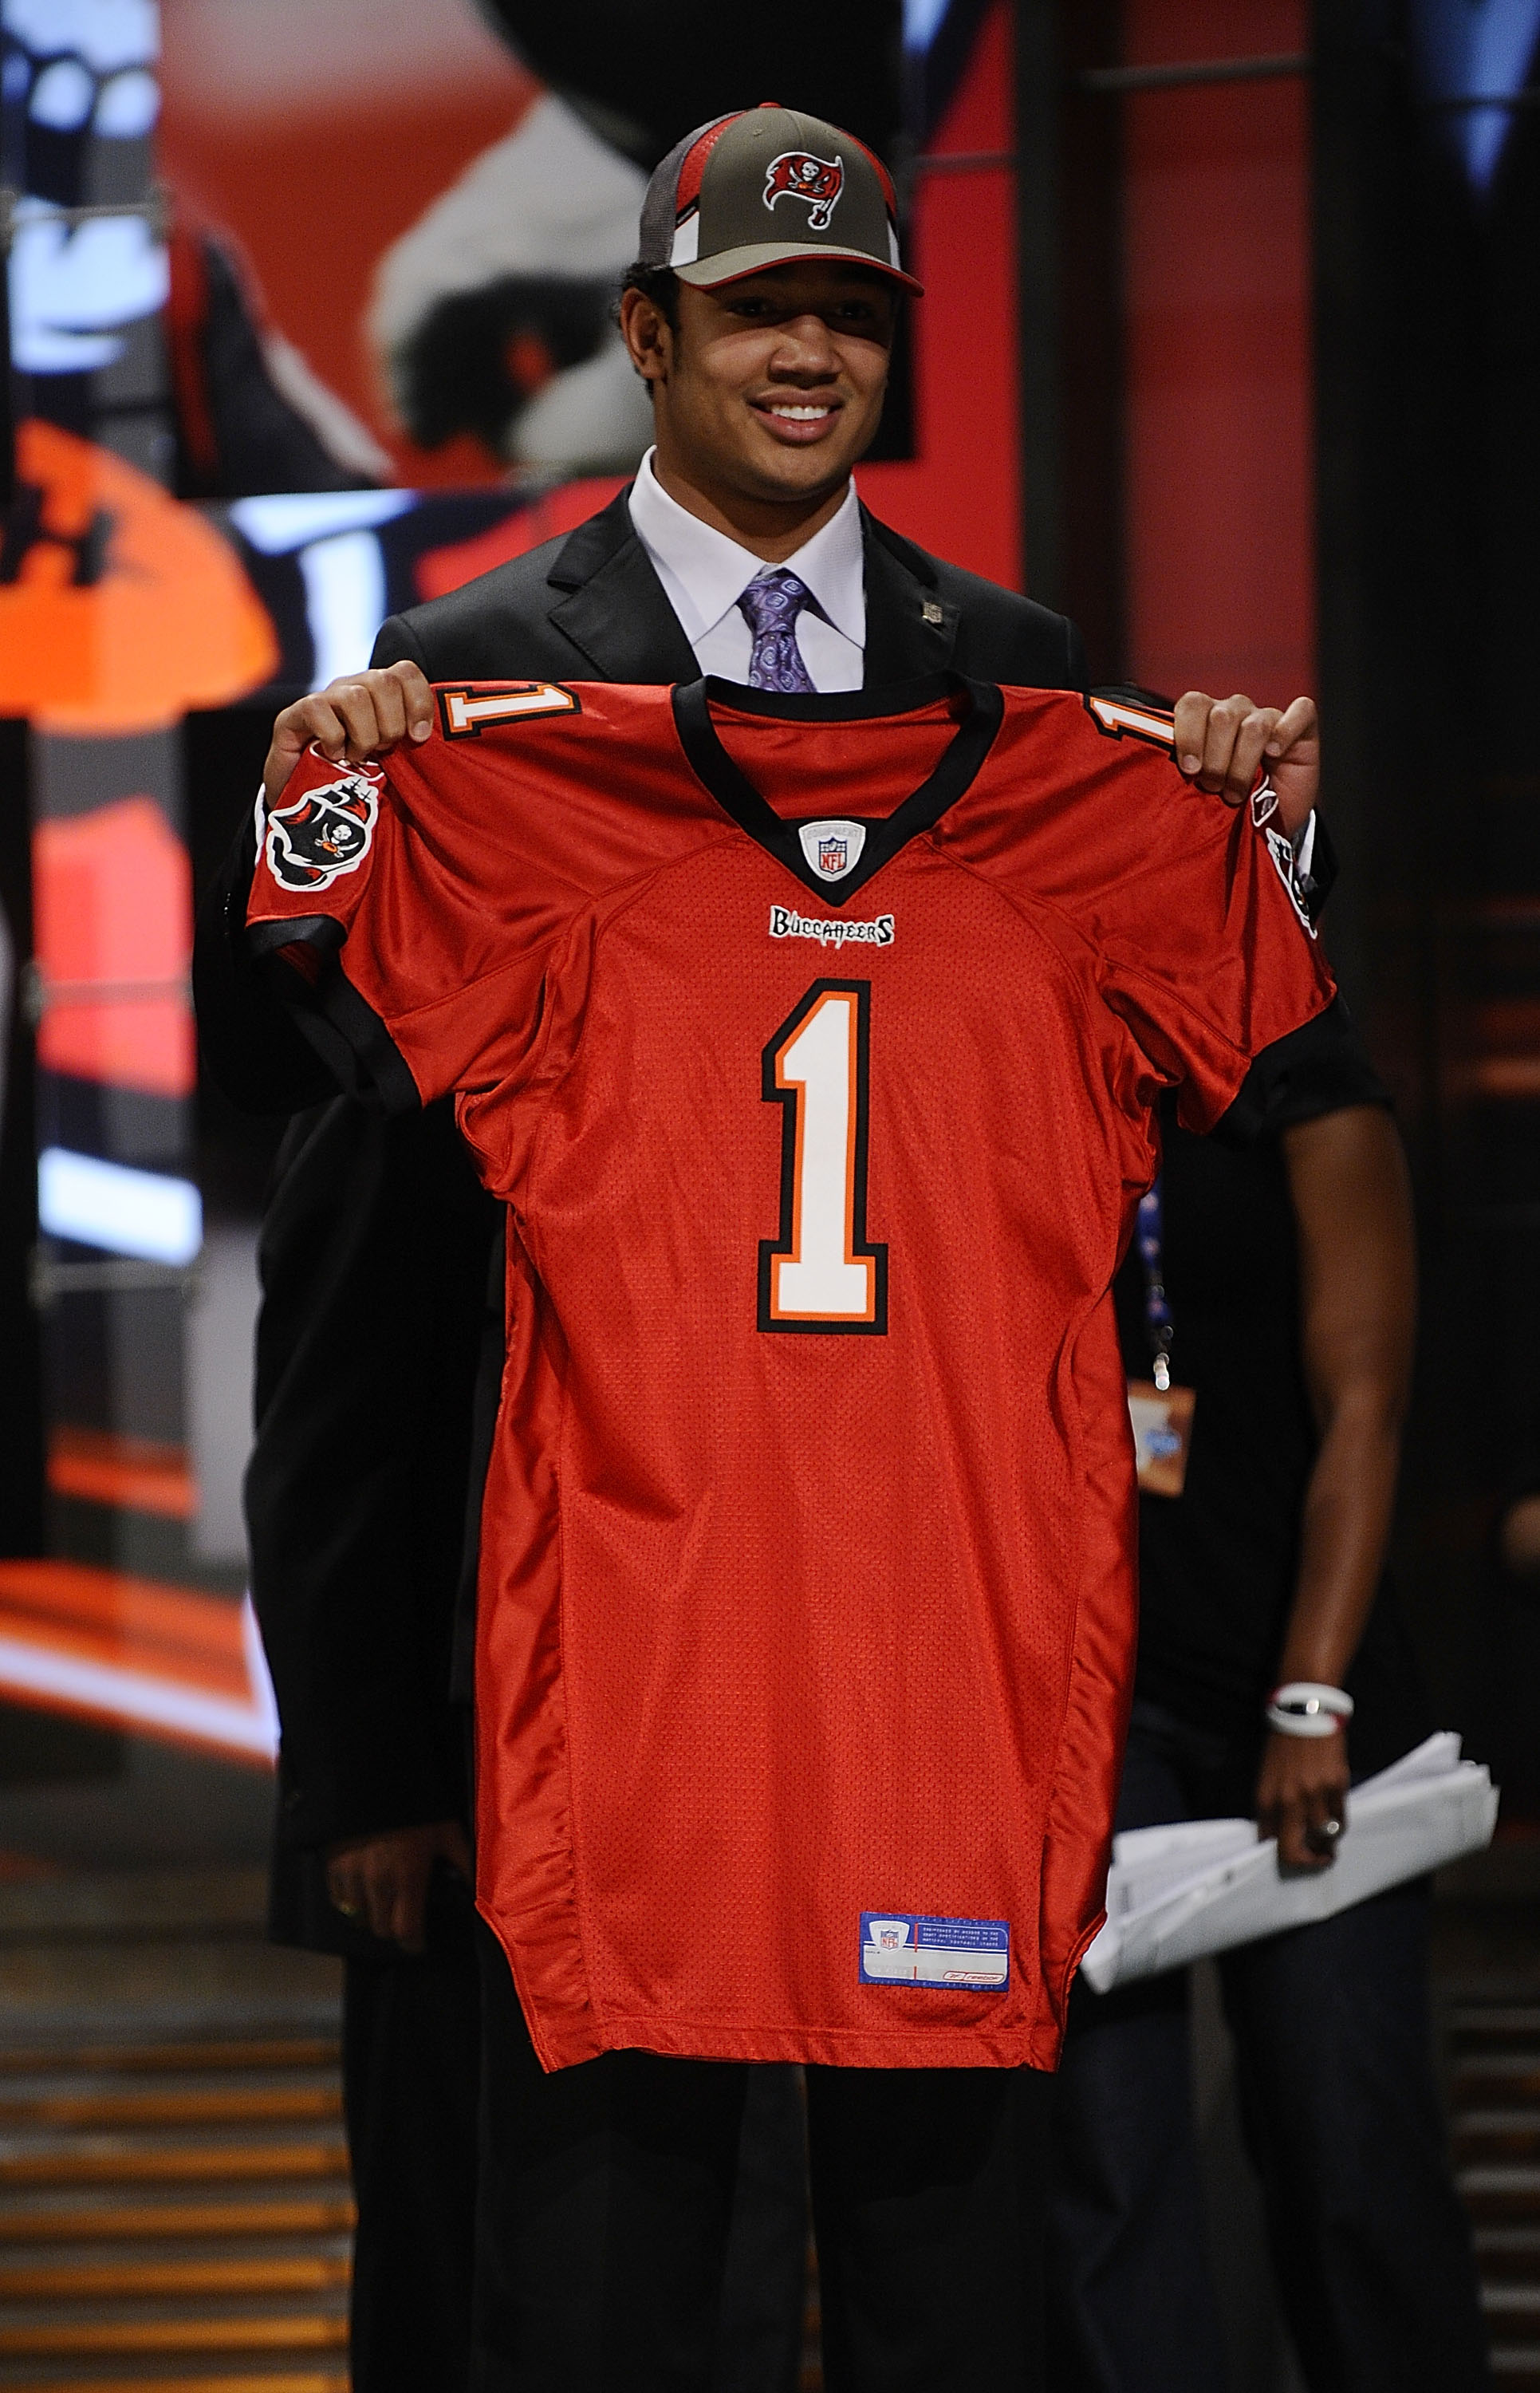 f869f1f79 Tampa Bay Buccaneers 2009 Draft  A Quick Look Back at the 2009 Draft Class